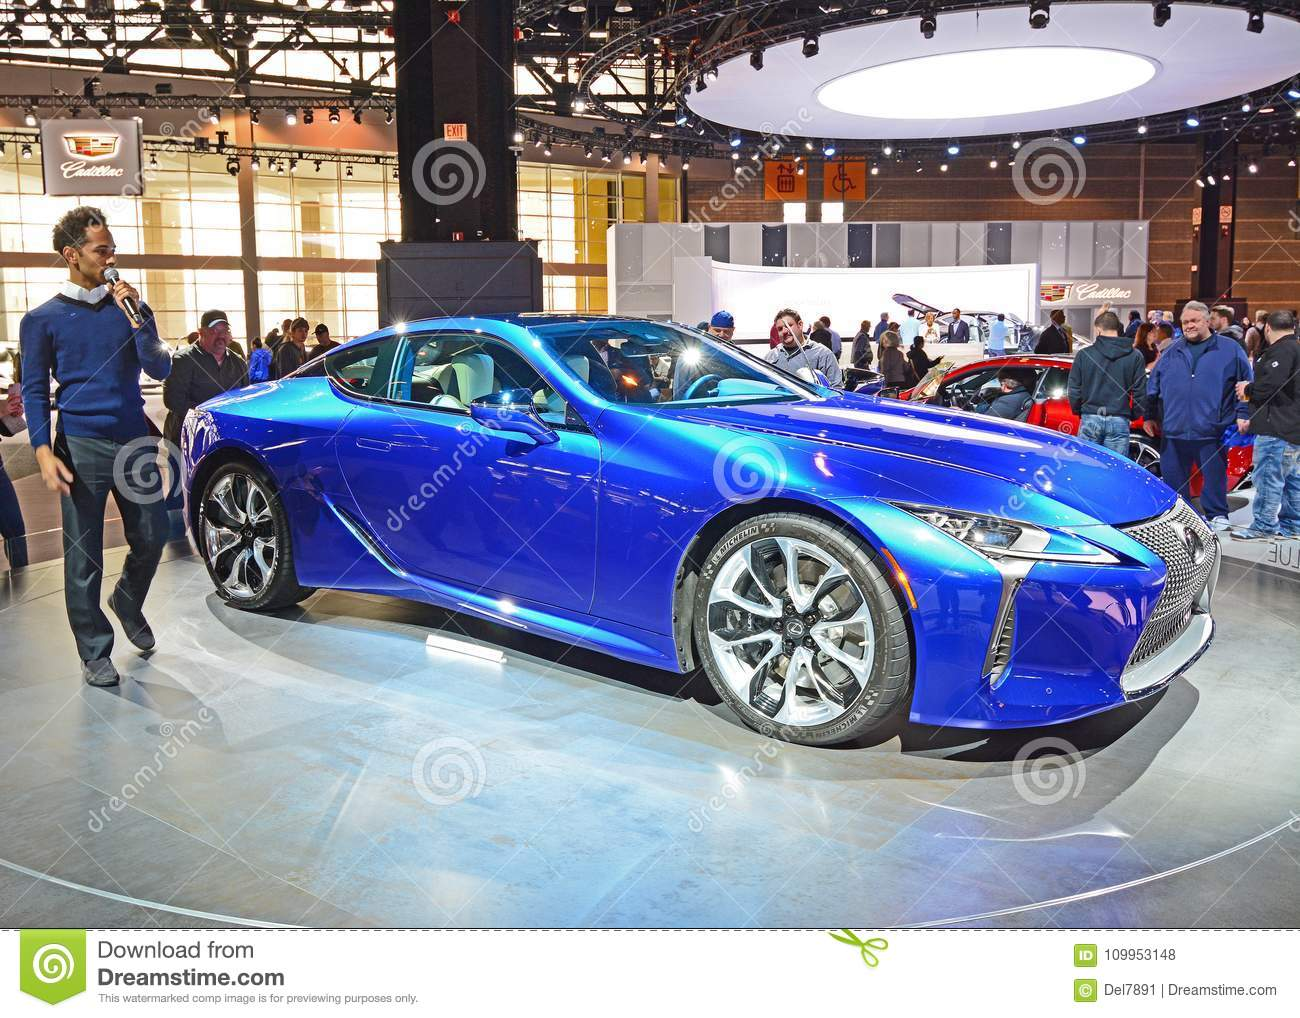 Download  Lexus Lc  Editorial Stock Photo Image Of Place